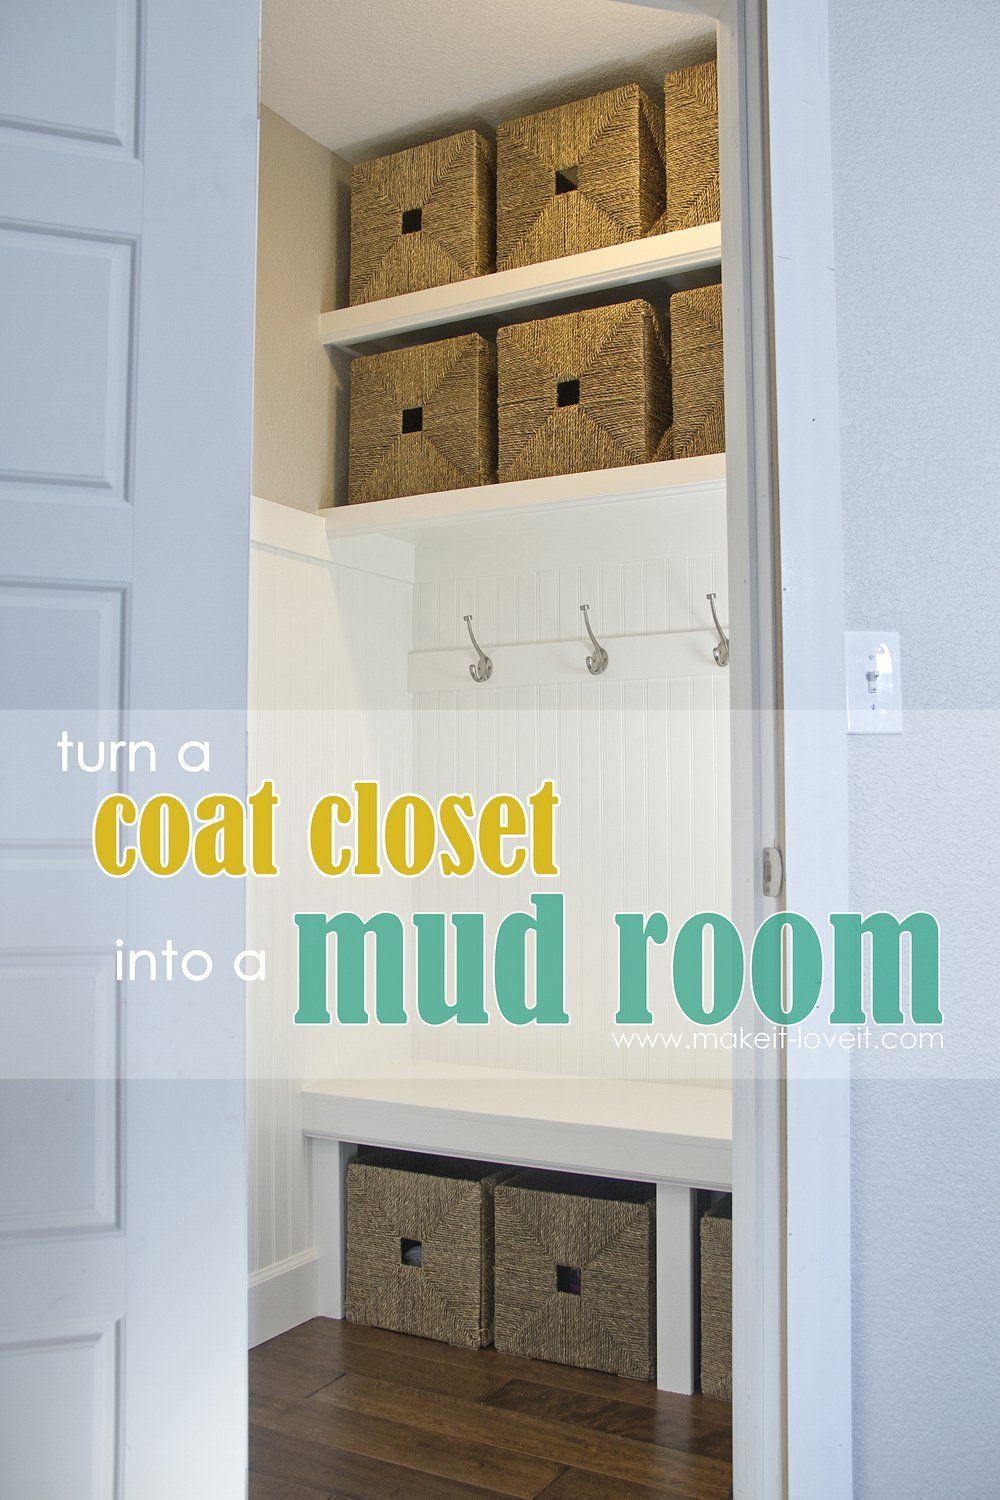 Turn A Coat Closet Into A Mudroomwith Hooks And Baskets For